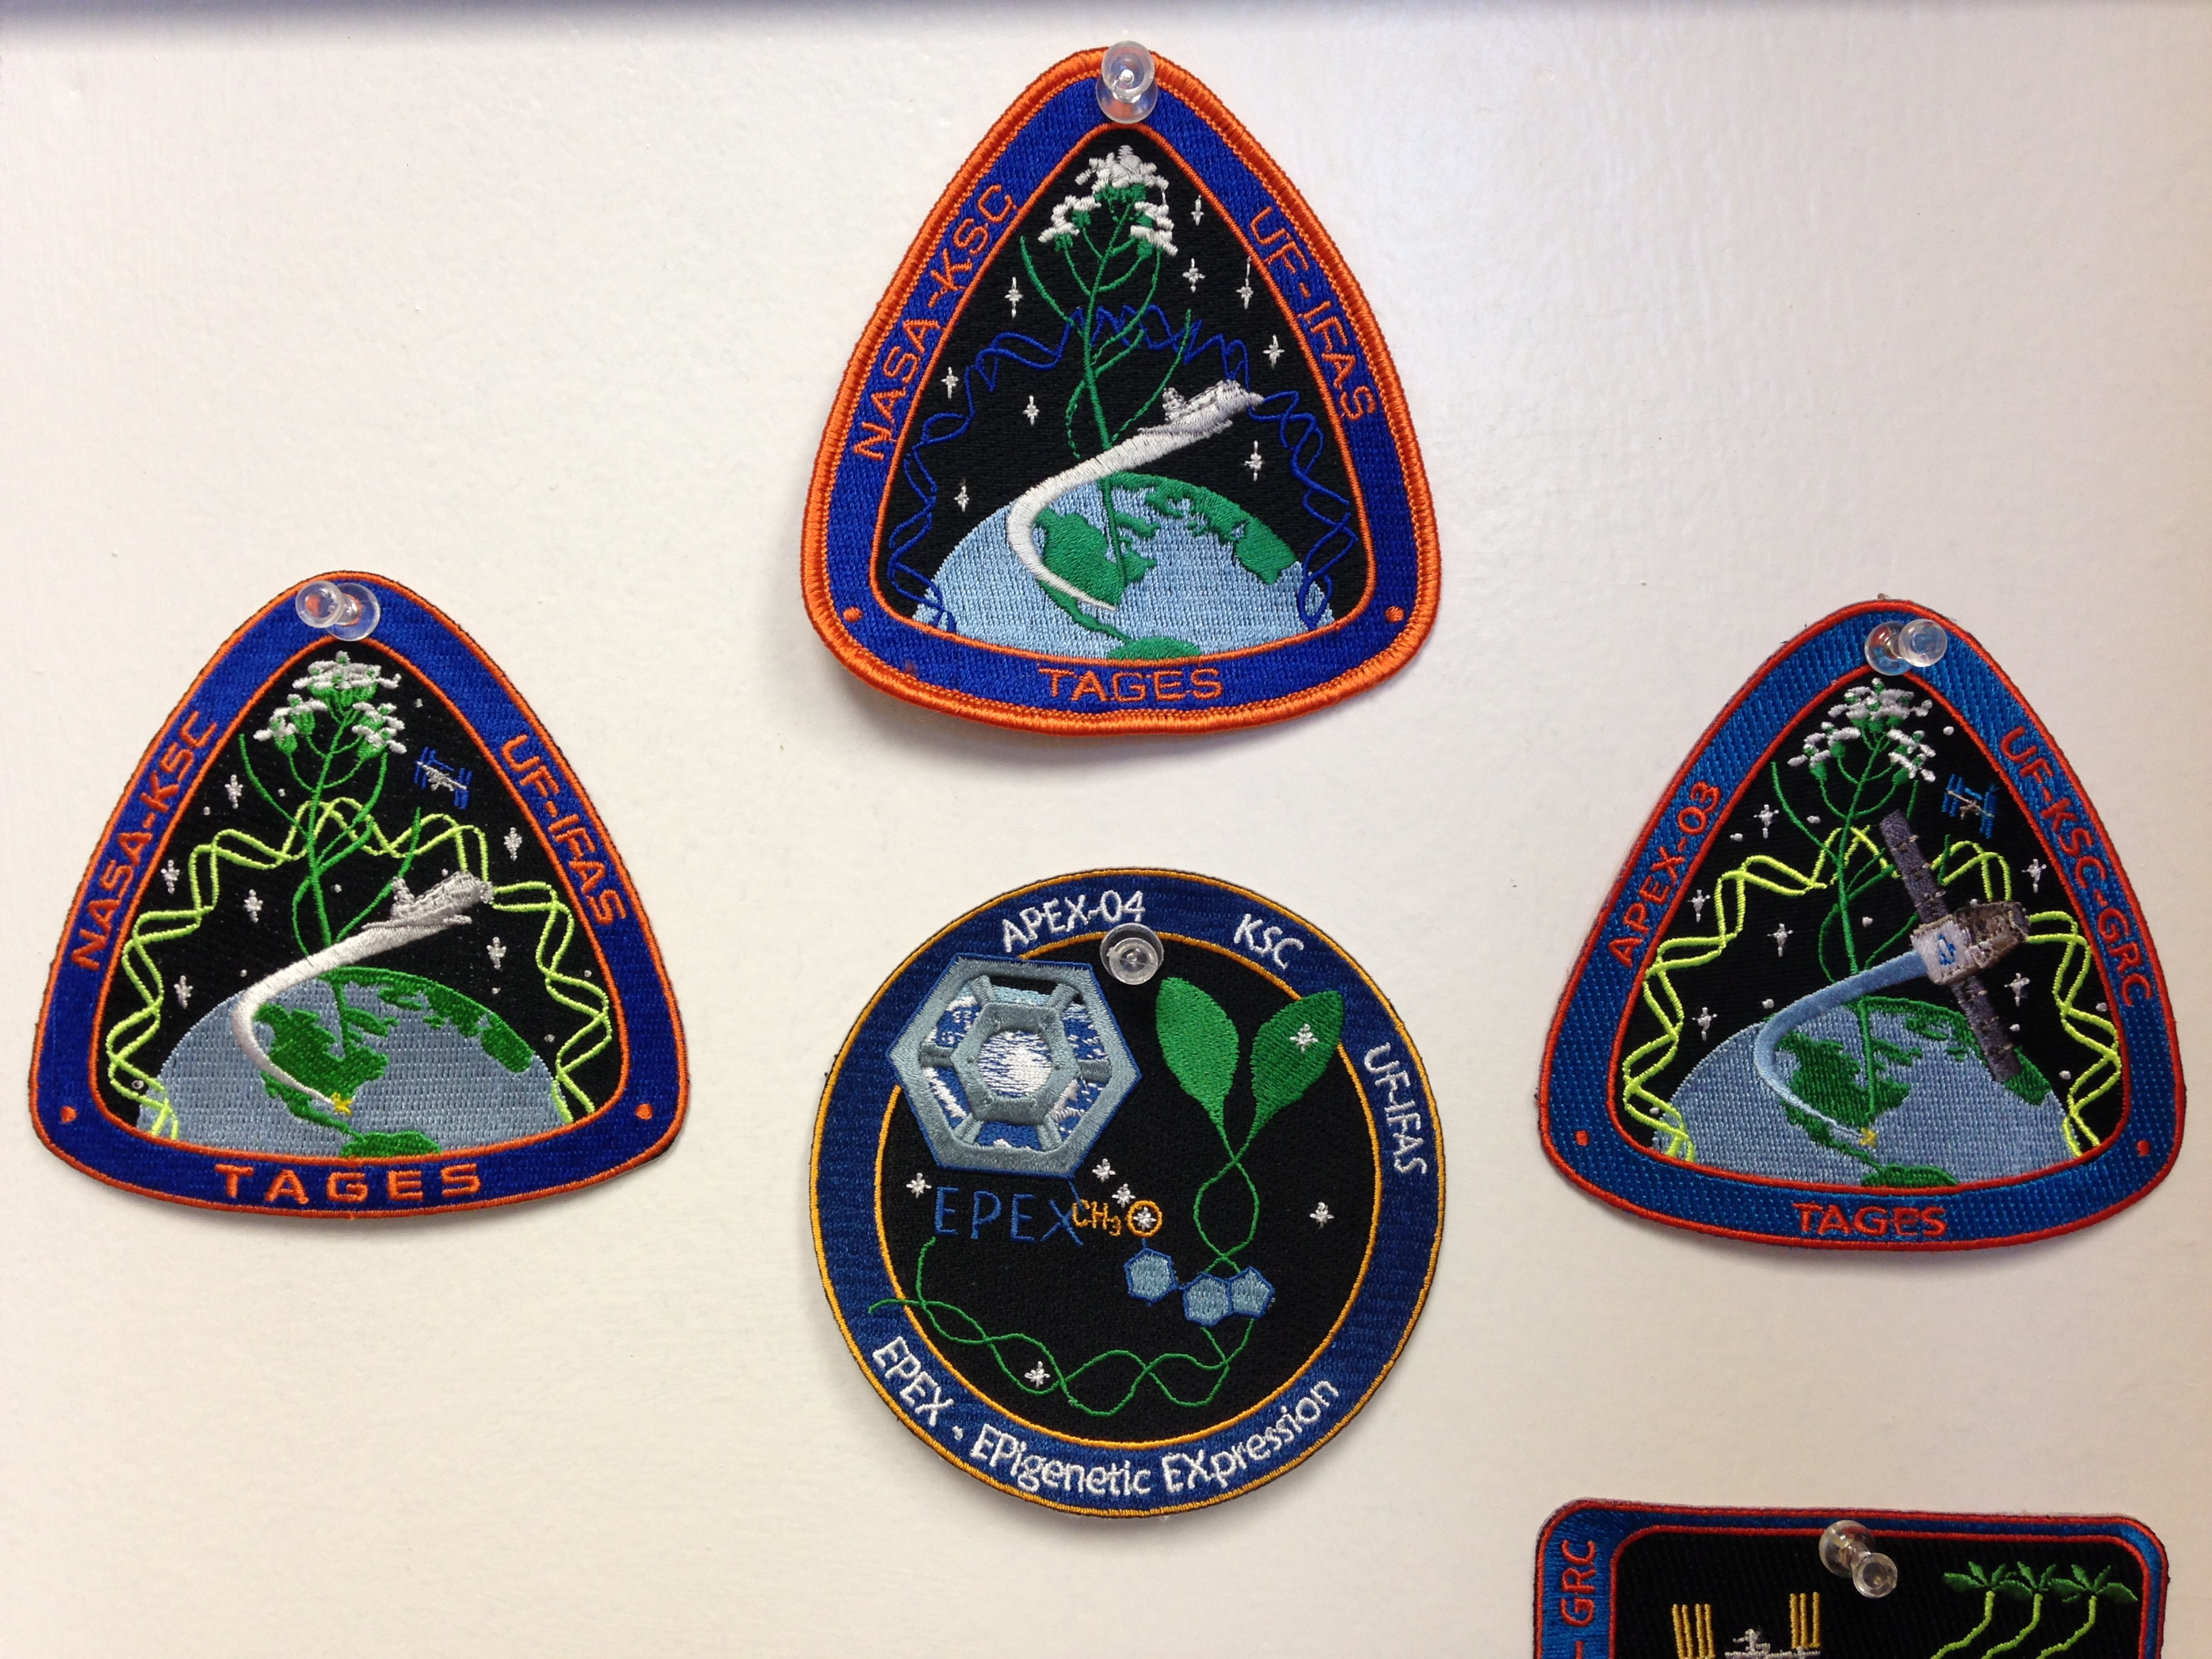 Patches from various missions Ferl and Paul's experiments have flown.